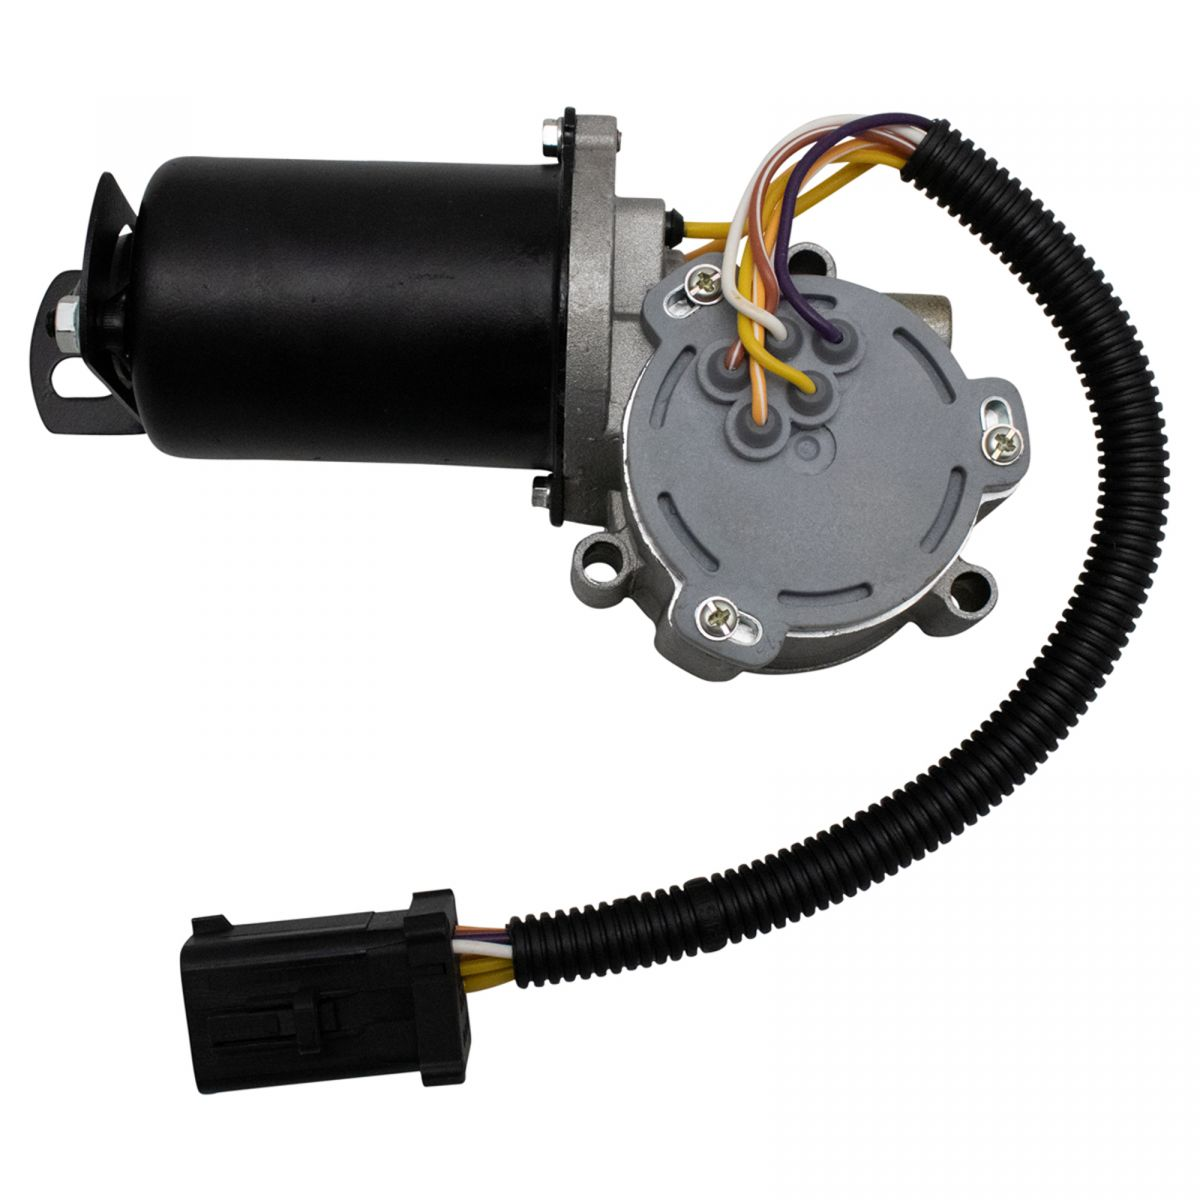 Dorman Transfer Case Shift Motor Actuator For Ford F150 Pickup Truck 4wd 4x4 Ebay